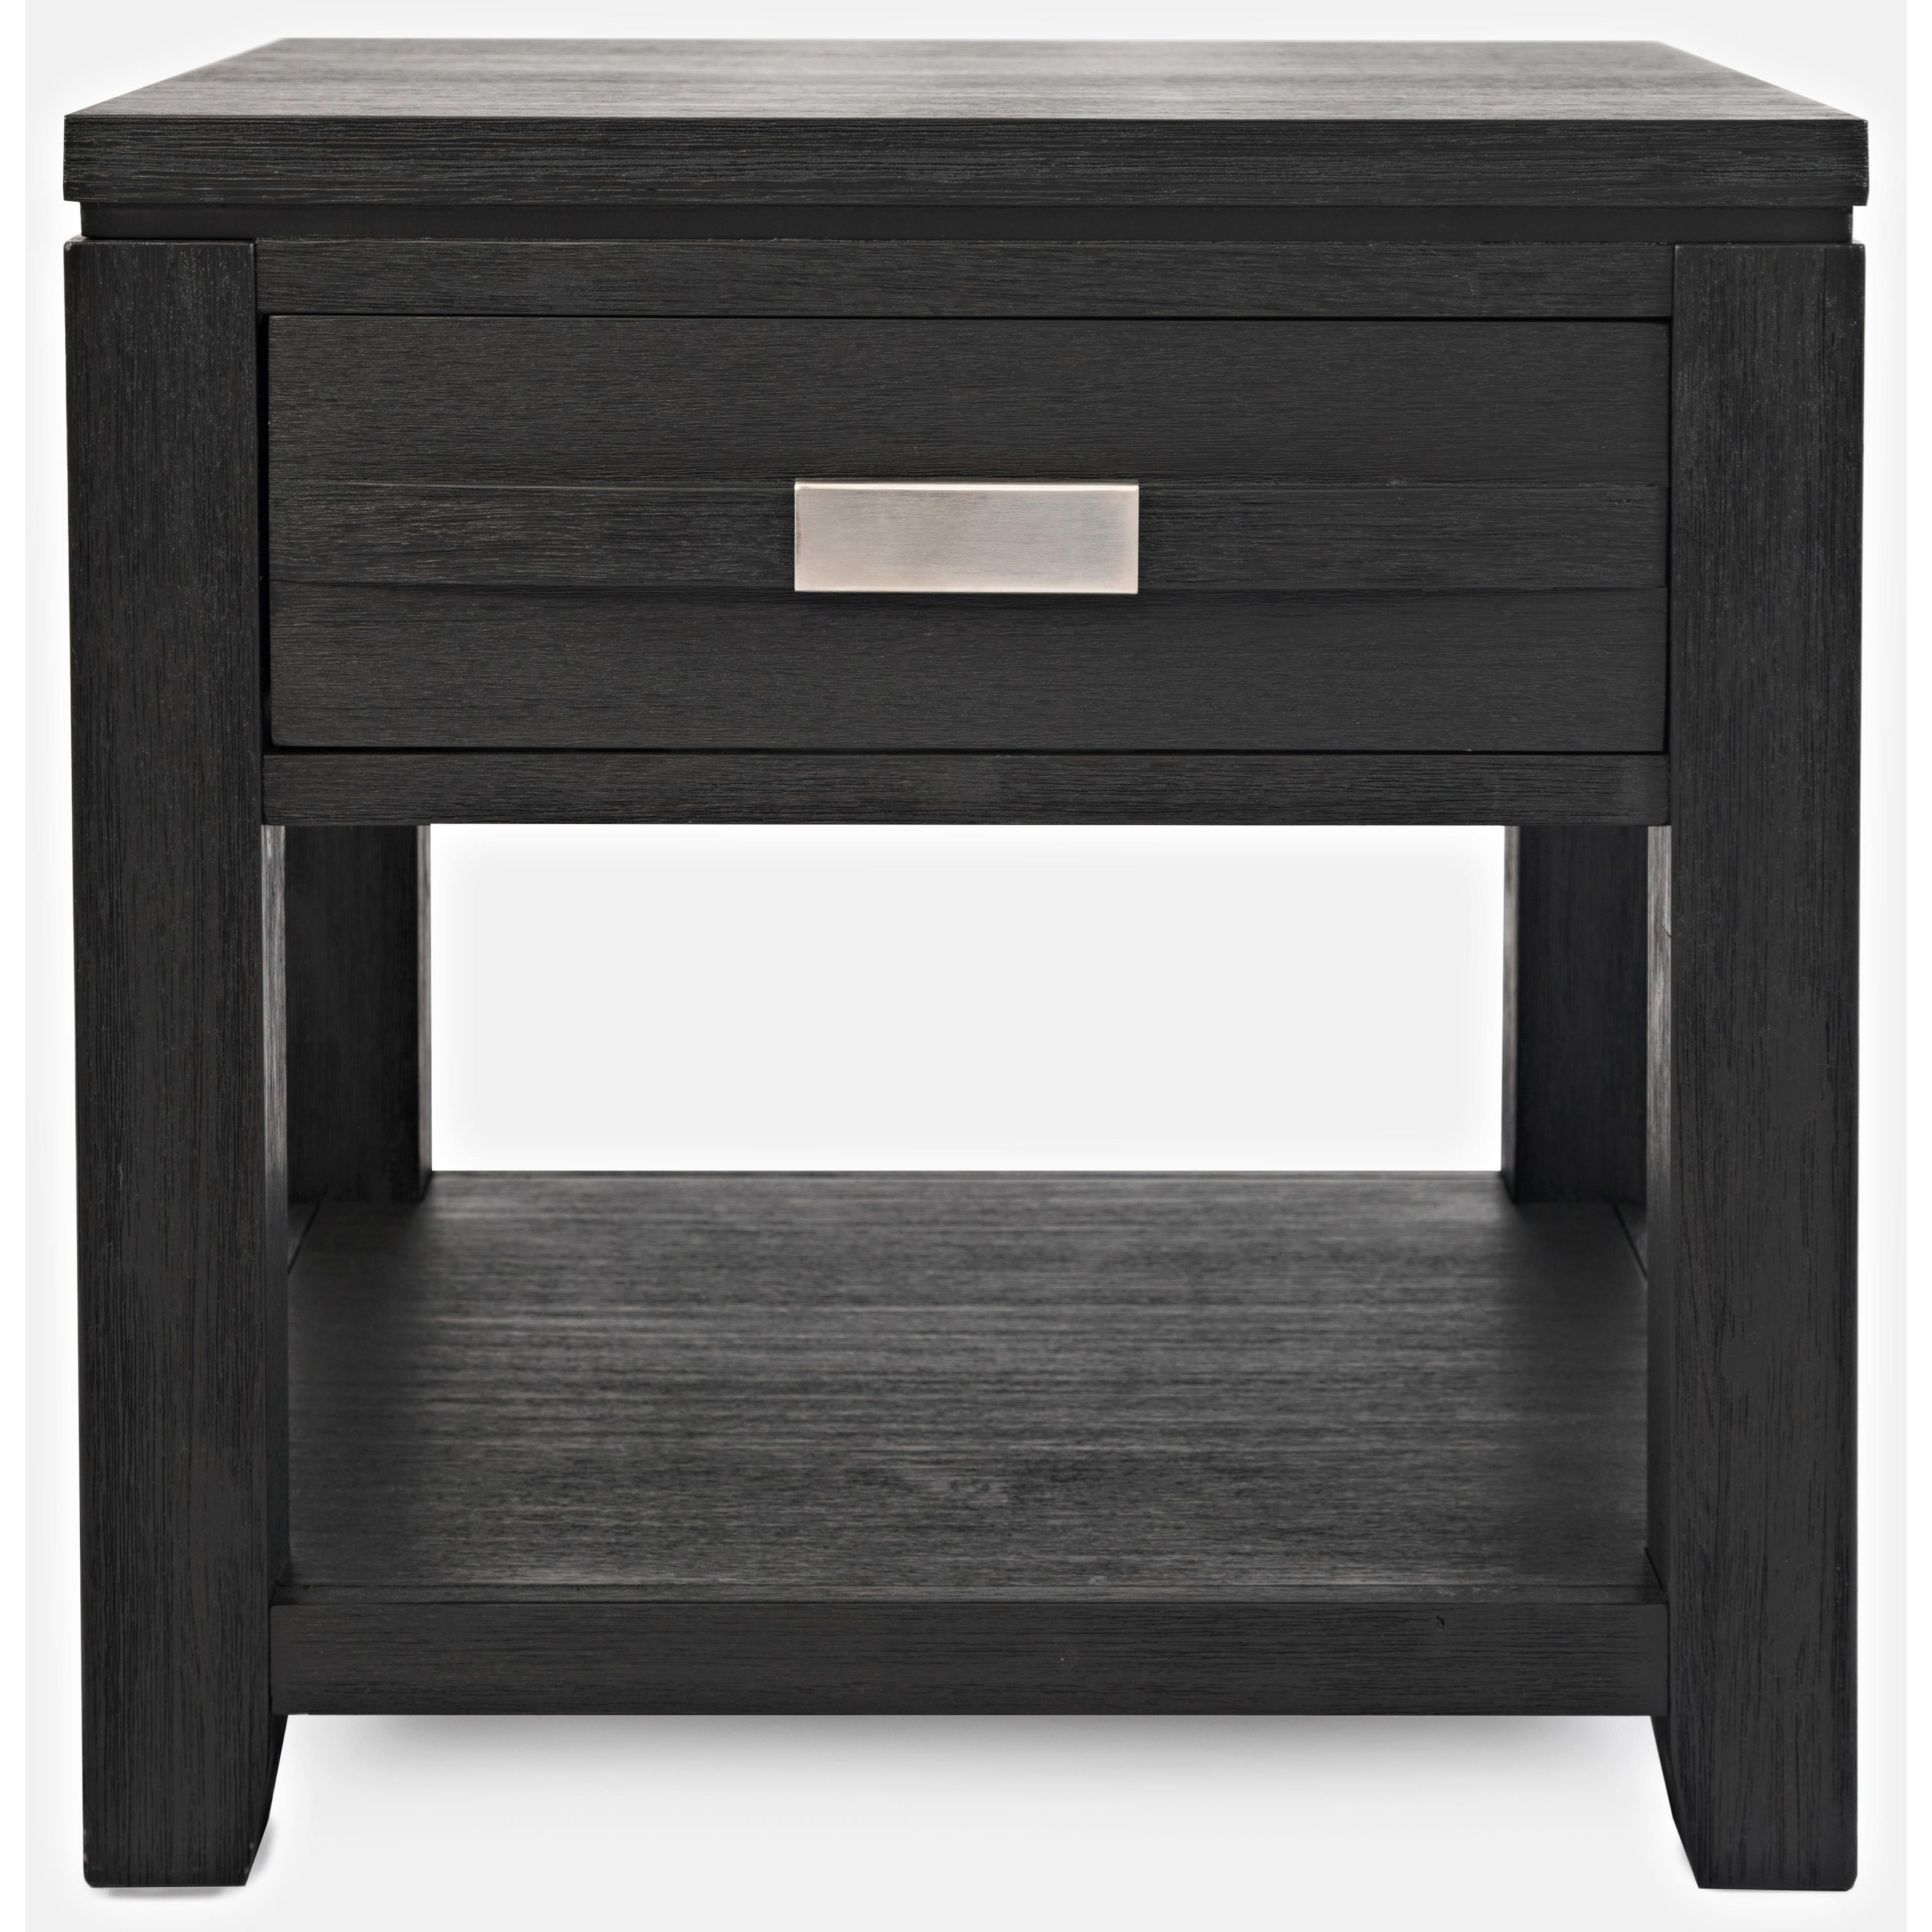 Altamonte End Table with Shelf by Jofran at Sparks HomeStore